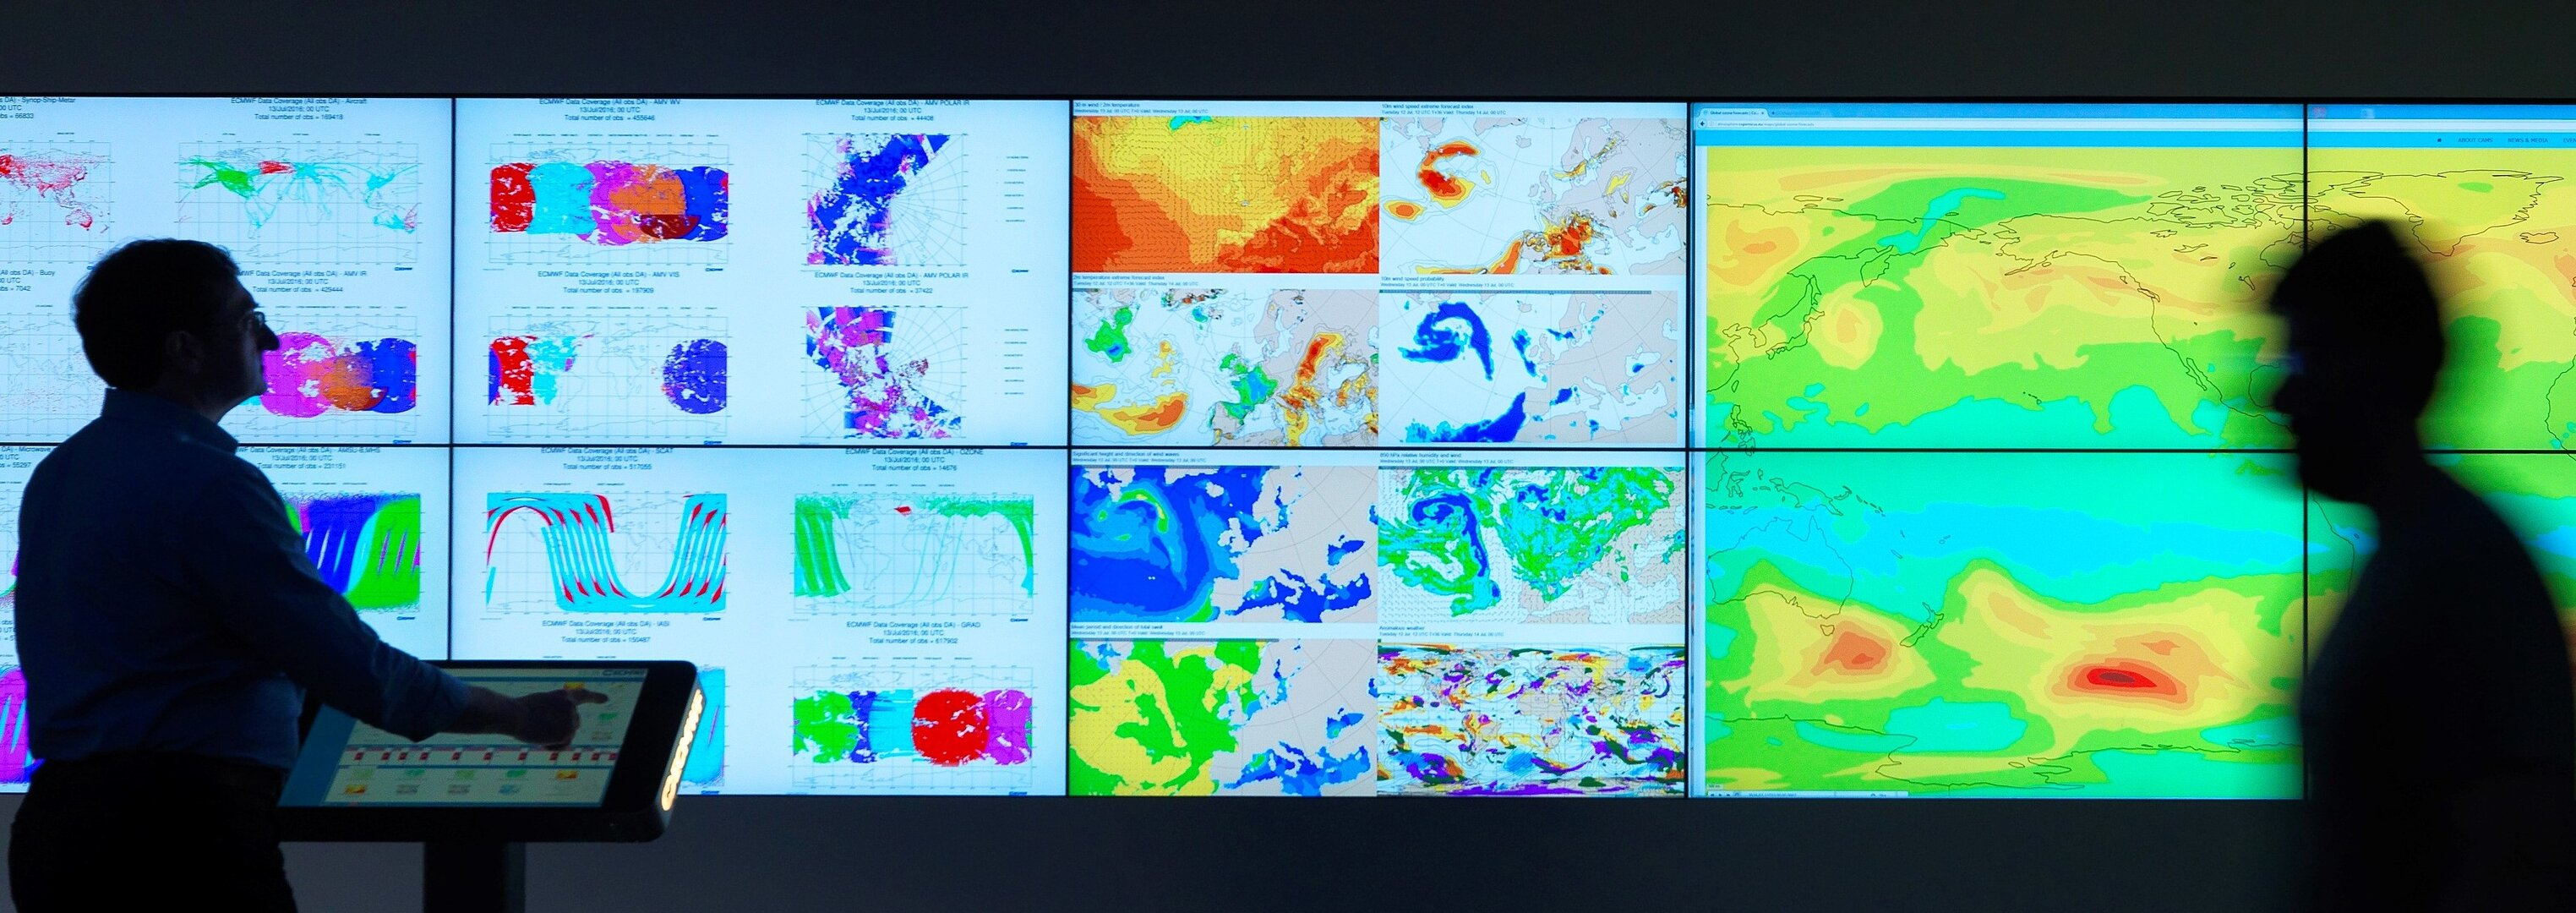 Weather room at ECMWF